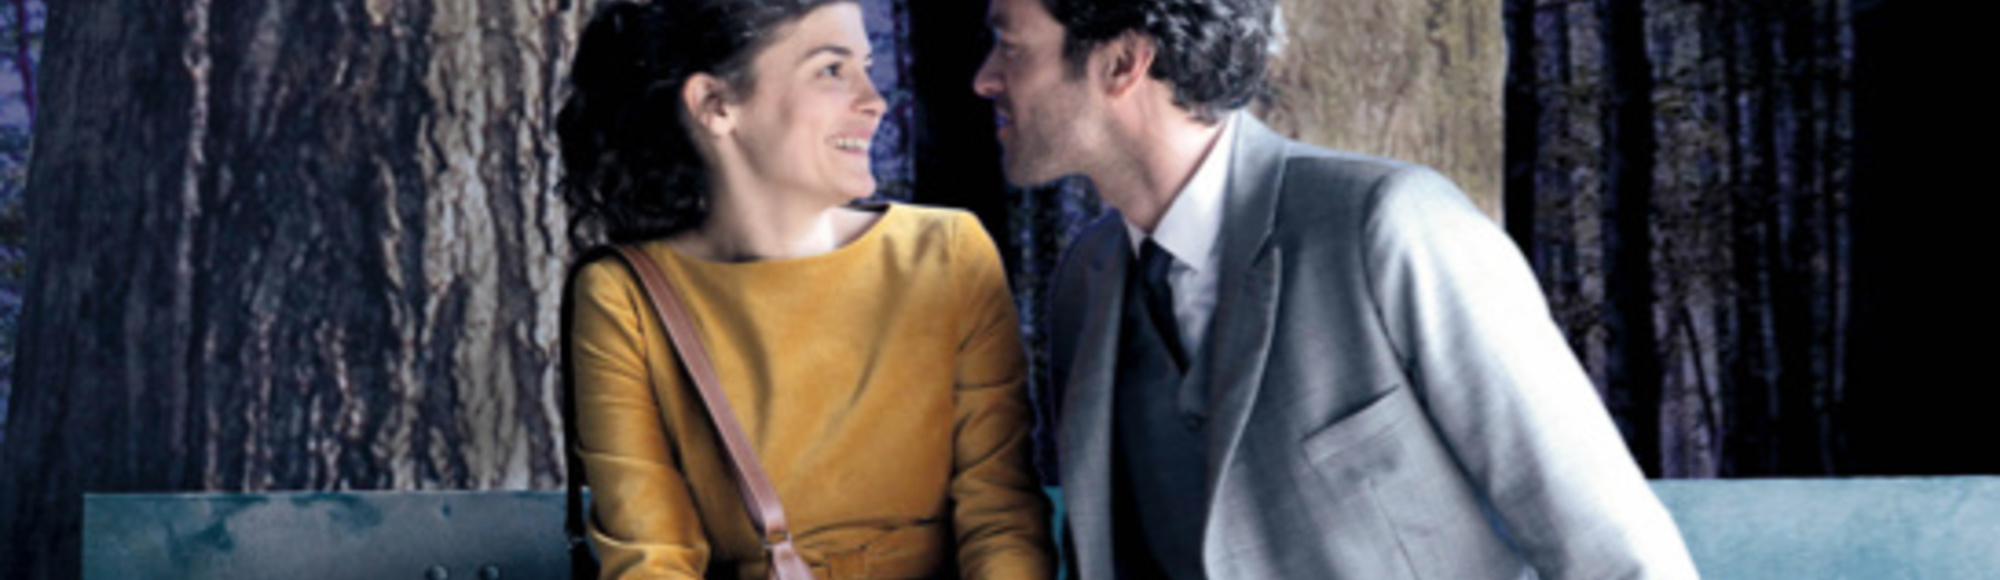 Michel Gondry Is Finally Back to Making French-Speaking Films